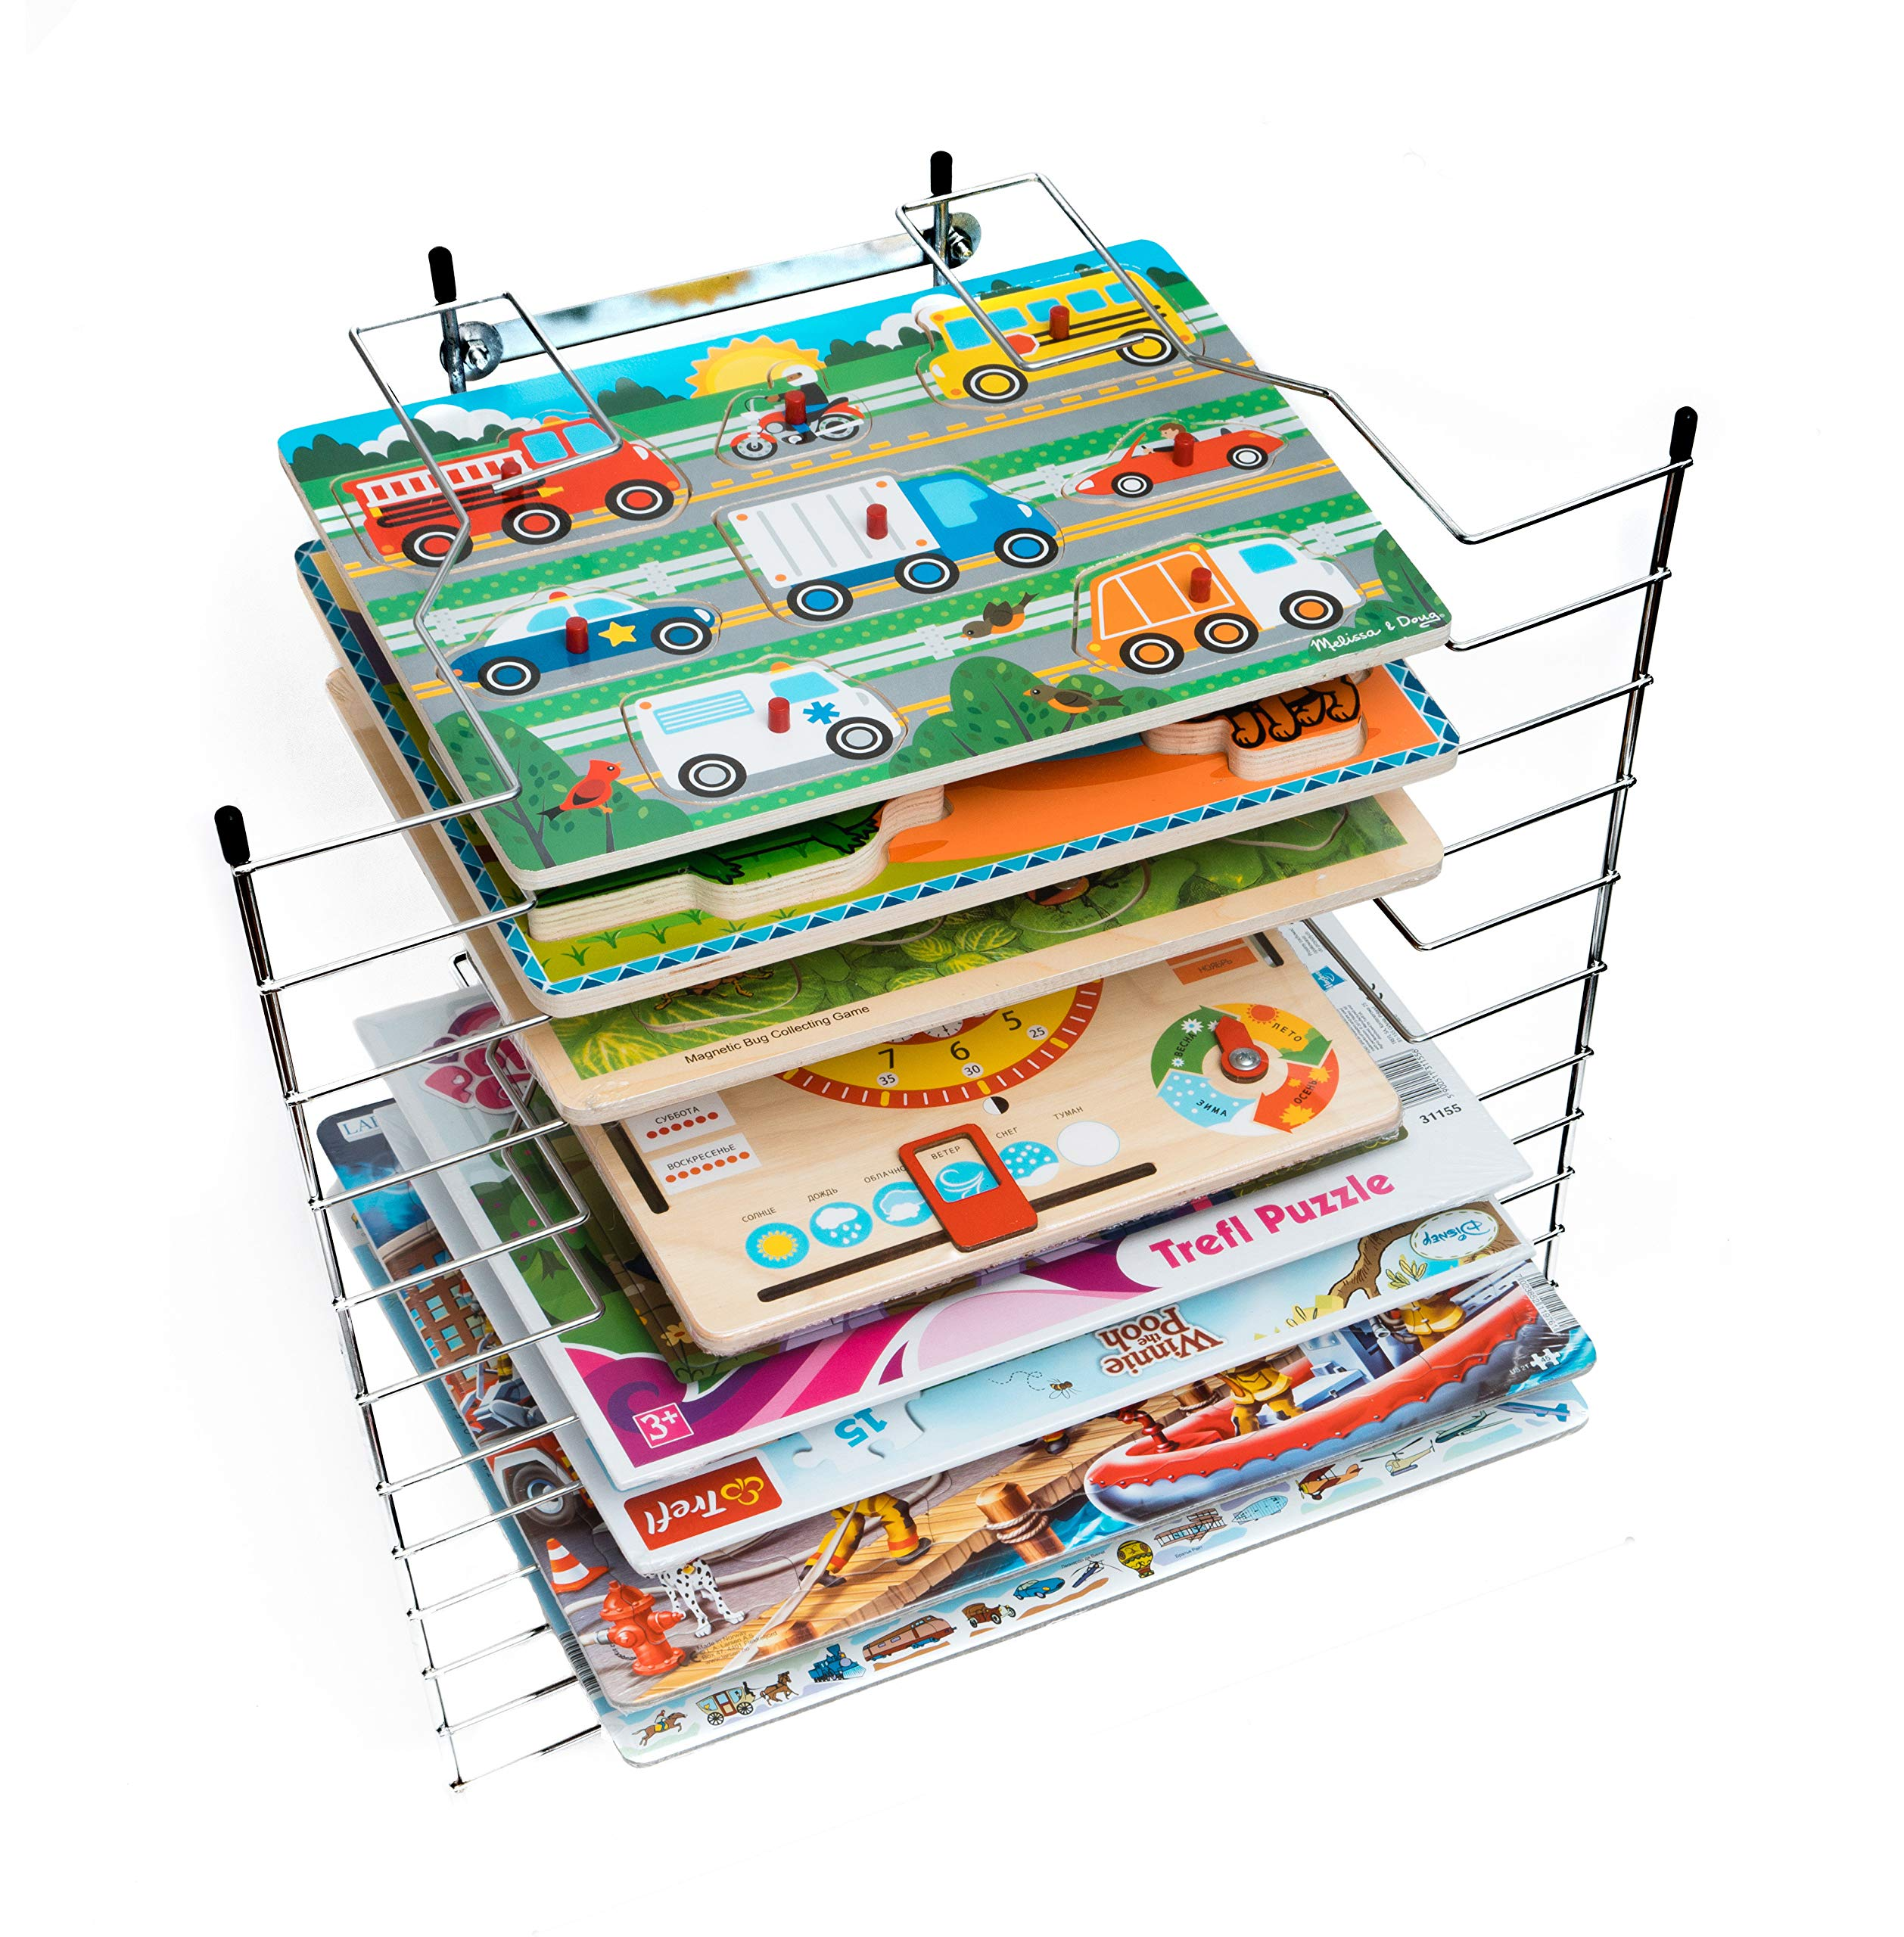 Puzzle Rack Organizer - Holder Storage Wooden Puzzles Toddlers - Large Wire Puzzle Stand Kids - Holds 12 Chunky Puzzles Peg Board Games